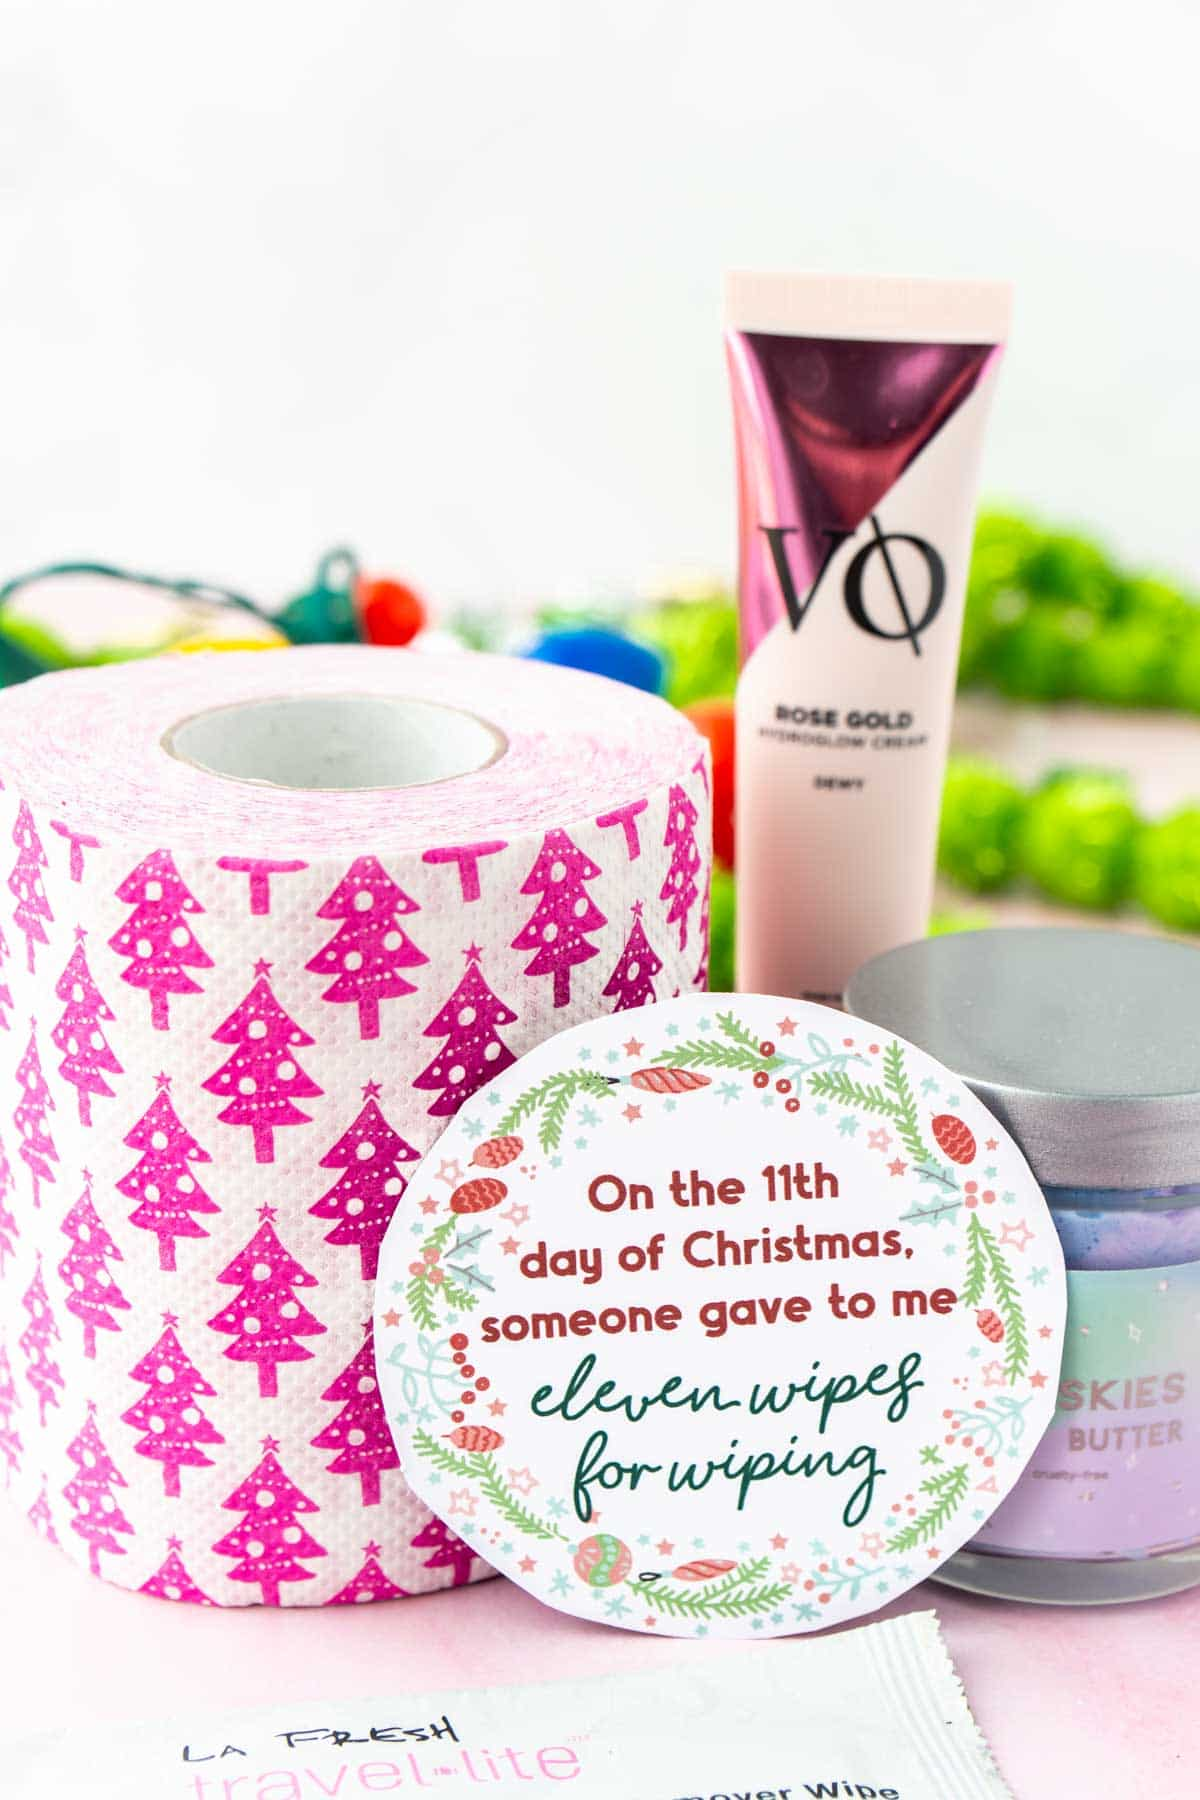 12 days of Christmas gifts for day 11 with a gift tag